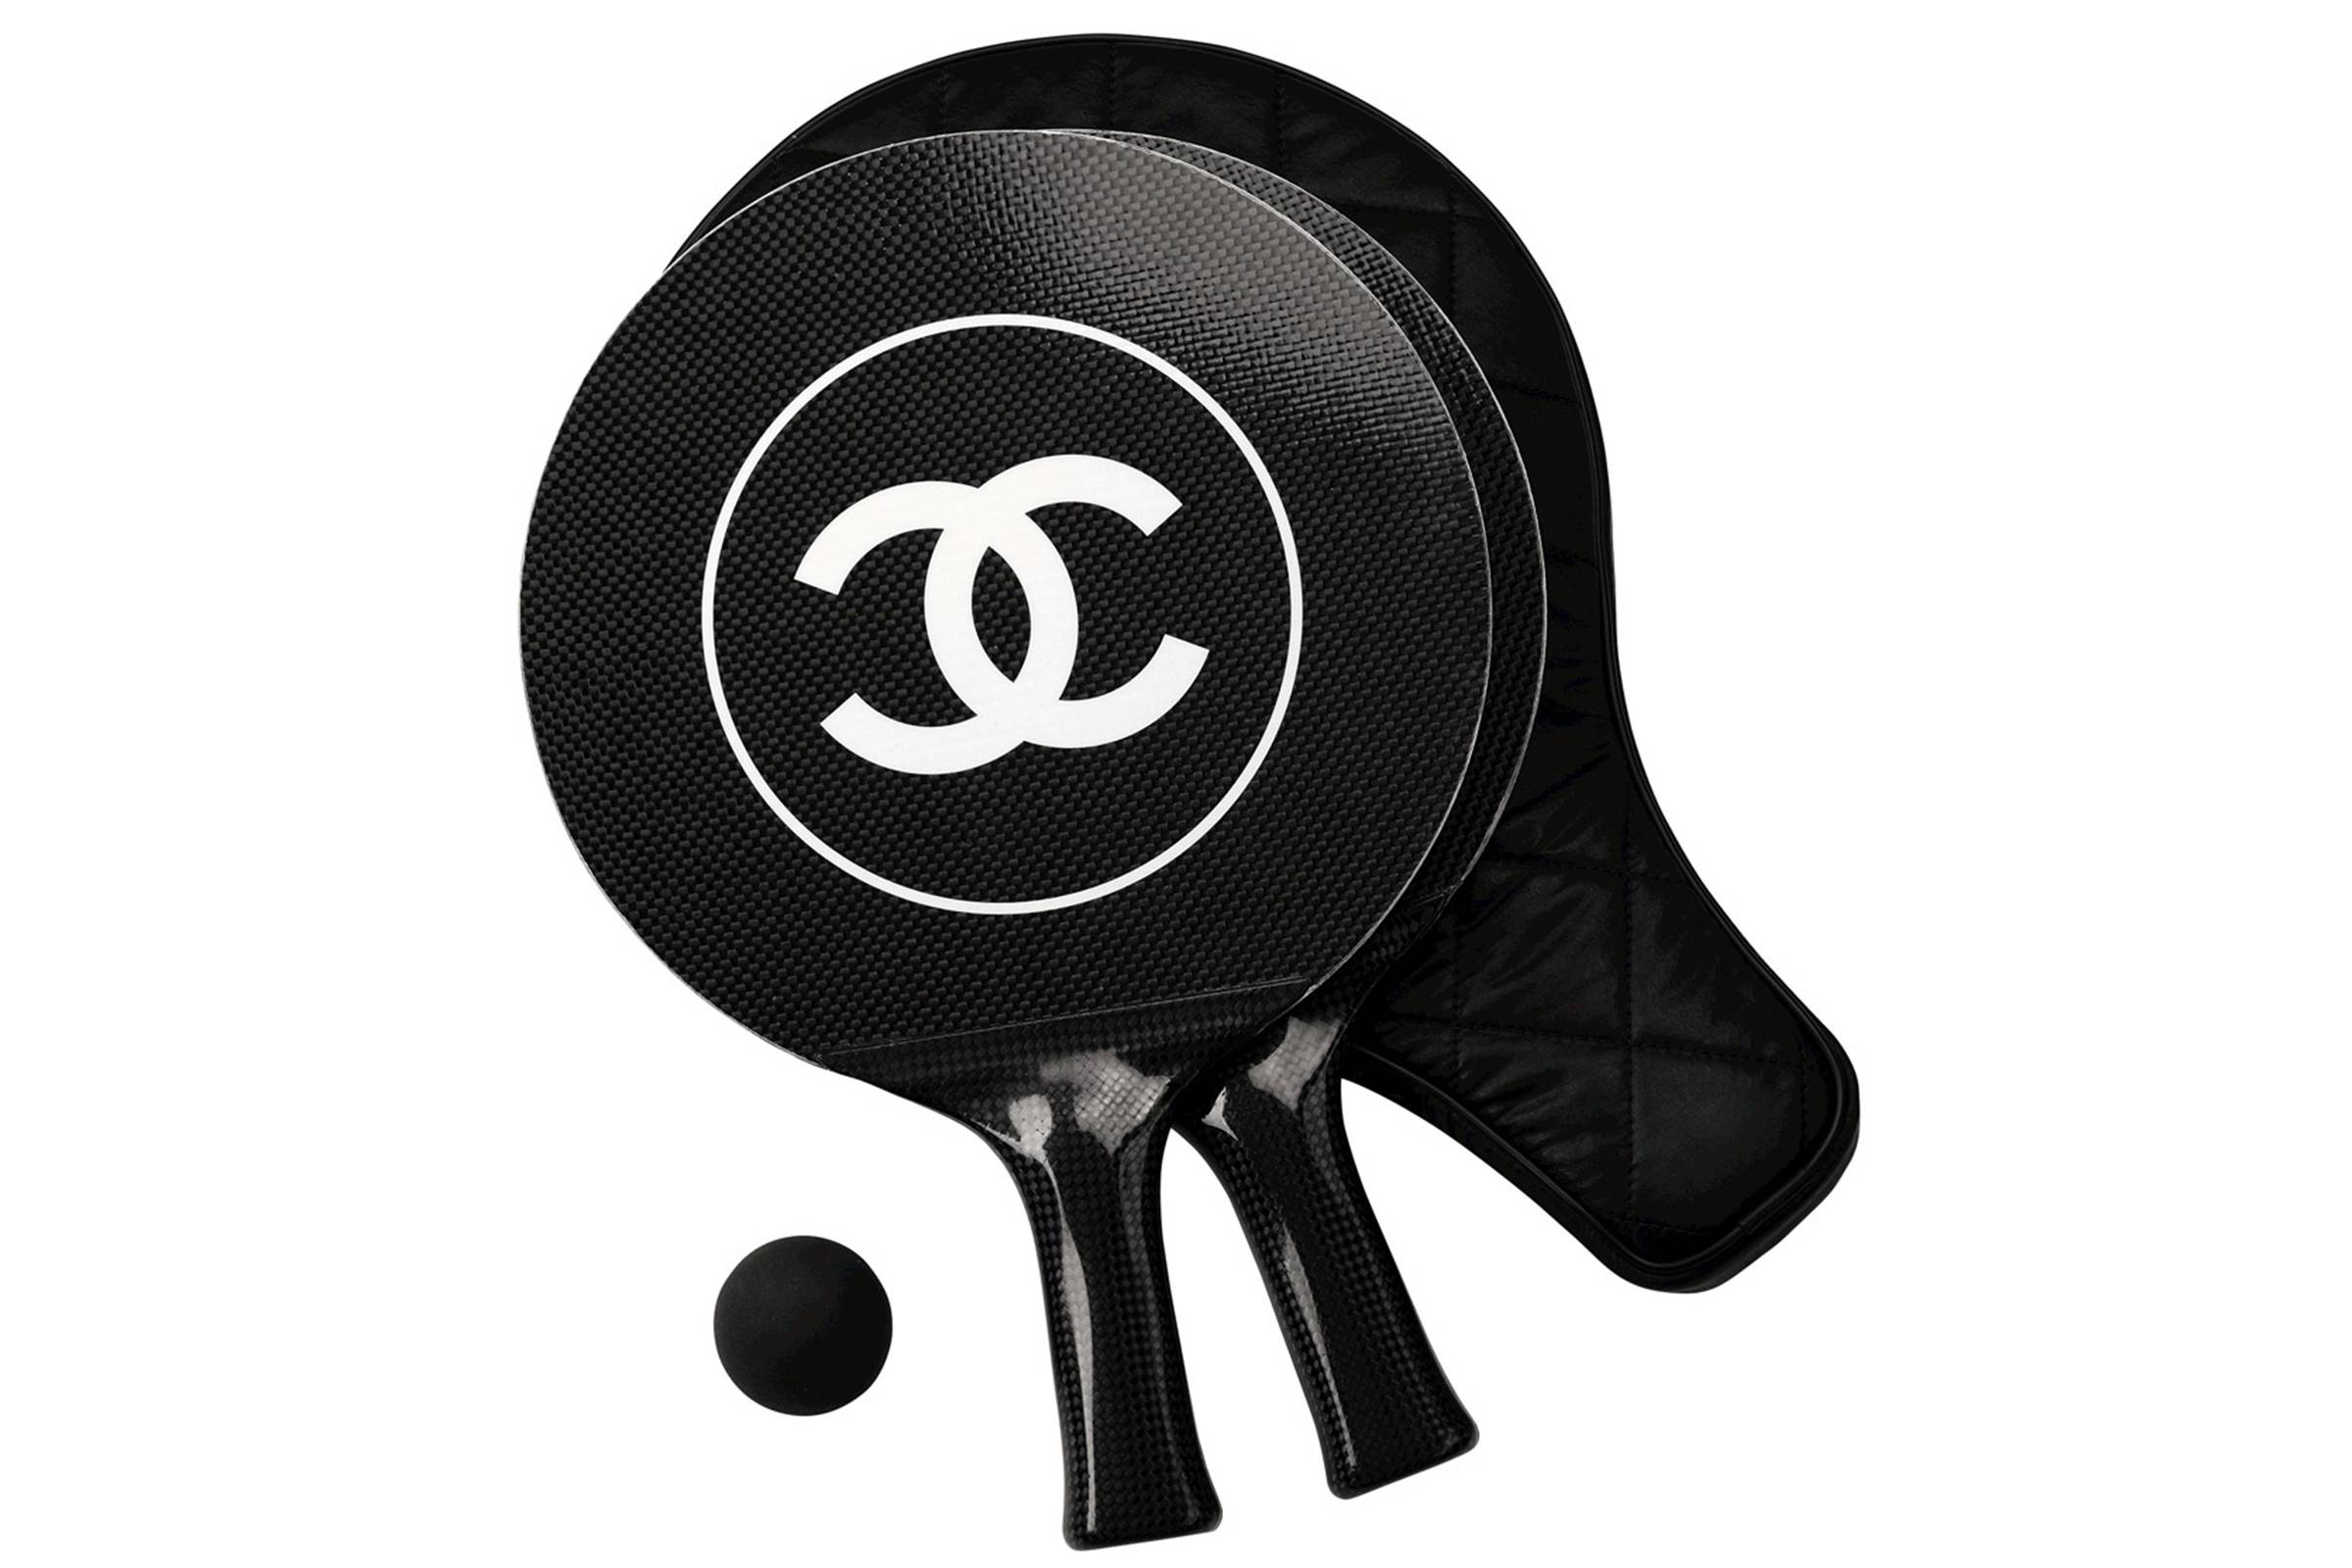 Chanel Table Tennis Set